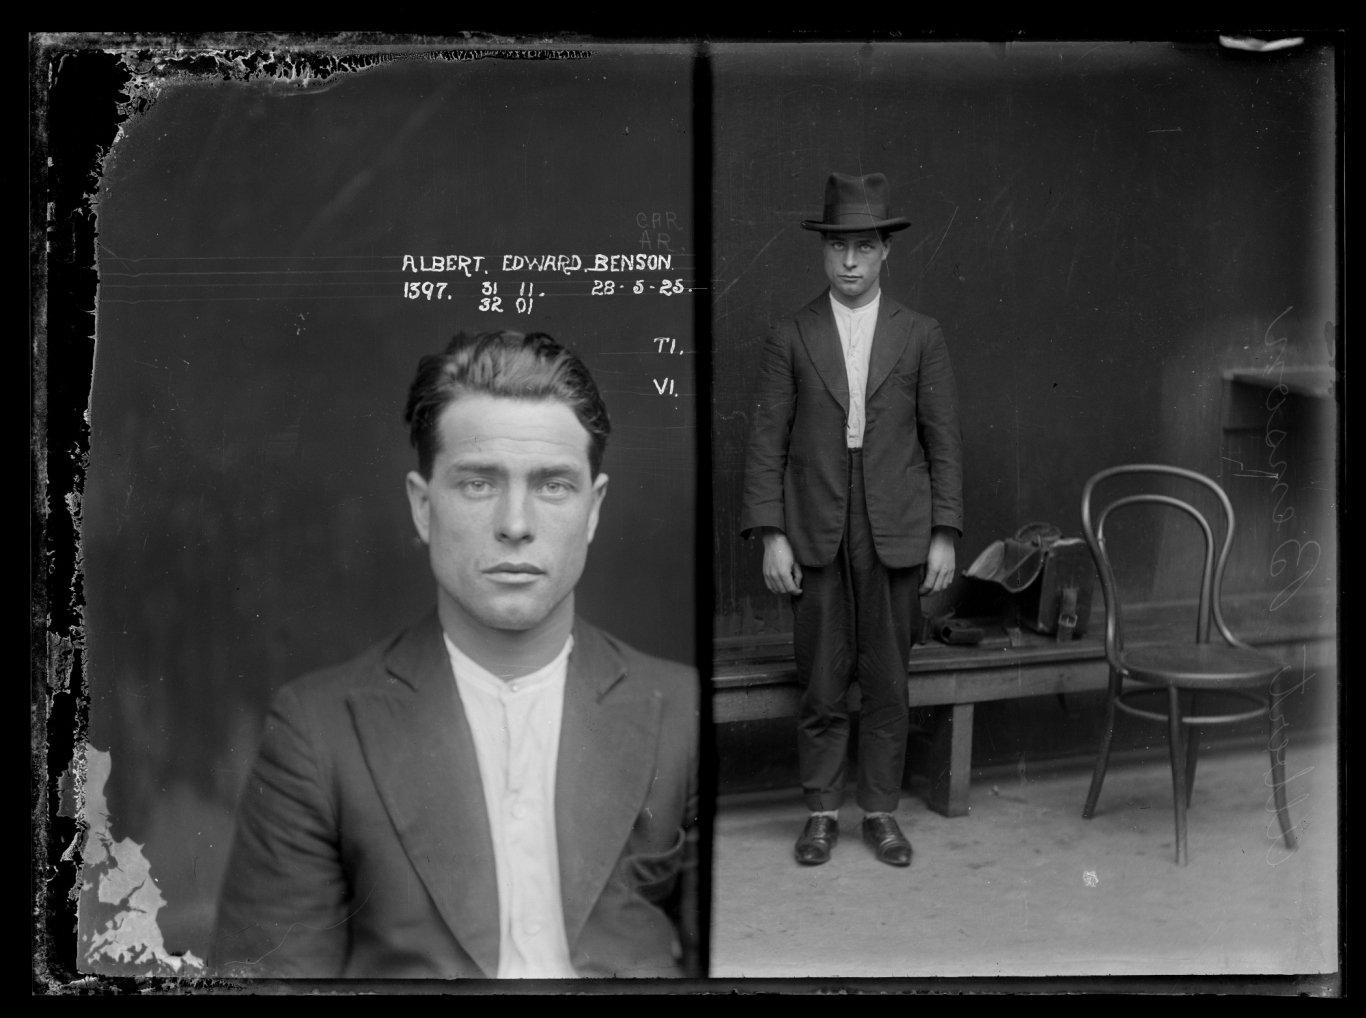 Dual mugshot in black and white; man seated and then man standing, with hat on. Photographer's bag on table behind man.